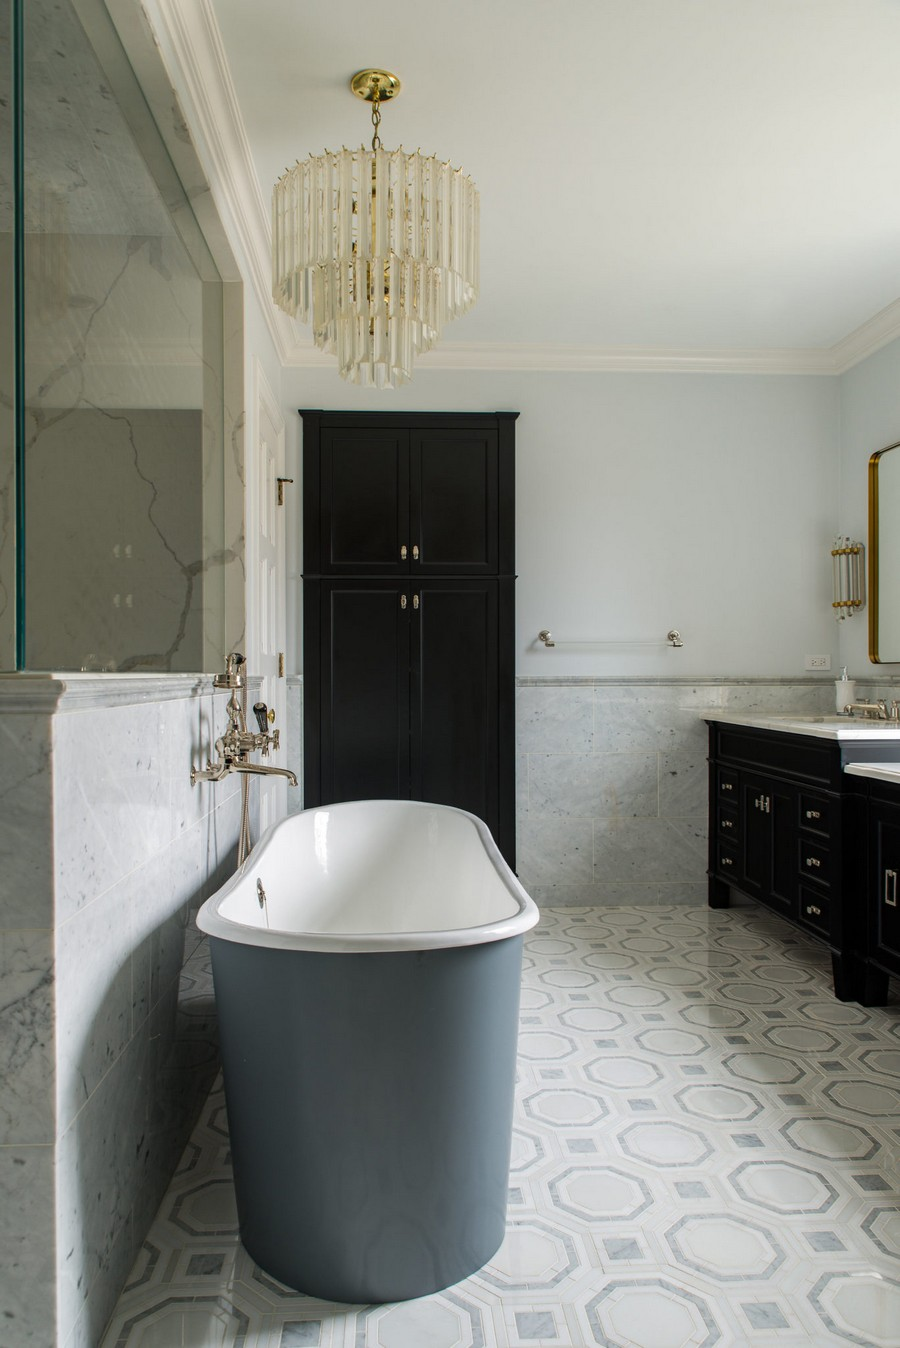 10 Luxury Design Ideas For Your Bathroom Design Project By SKIN Design luxury design 10 Luxury Design Ideas For Your Bathroom Design Project By SKIN Design 10 Luxury Design Ideas For Your Bathroom Design Project By SKIN Design 8